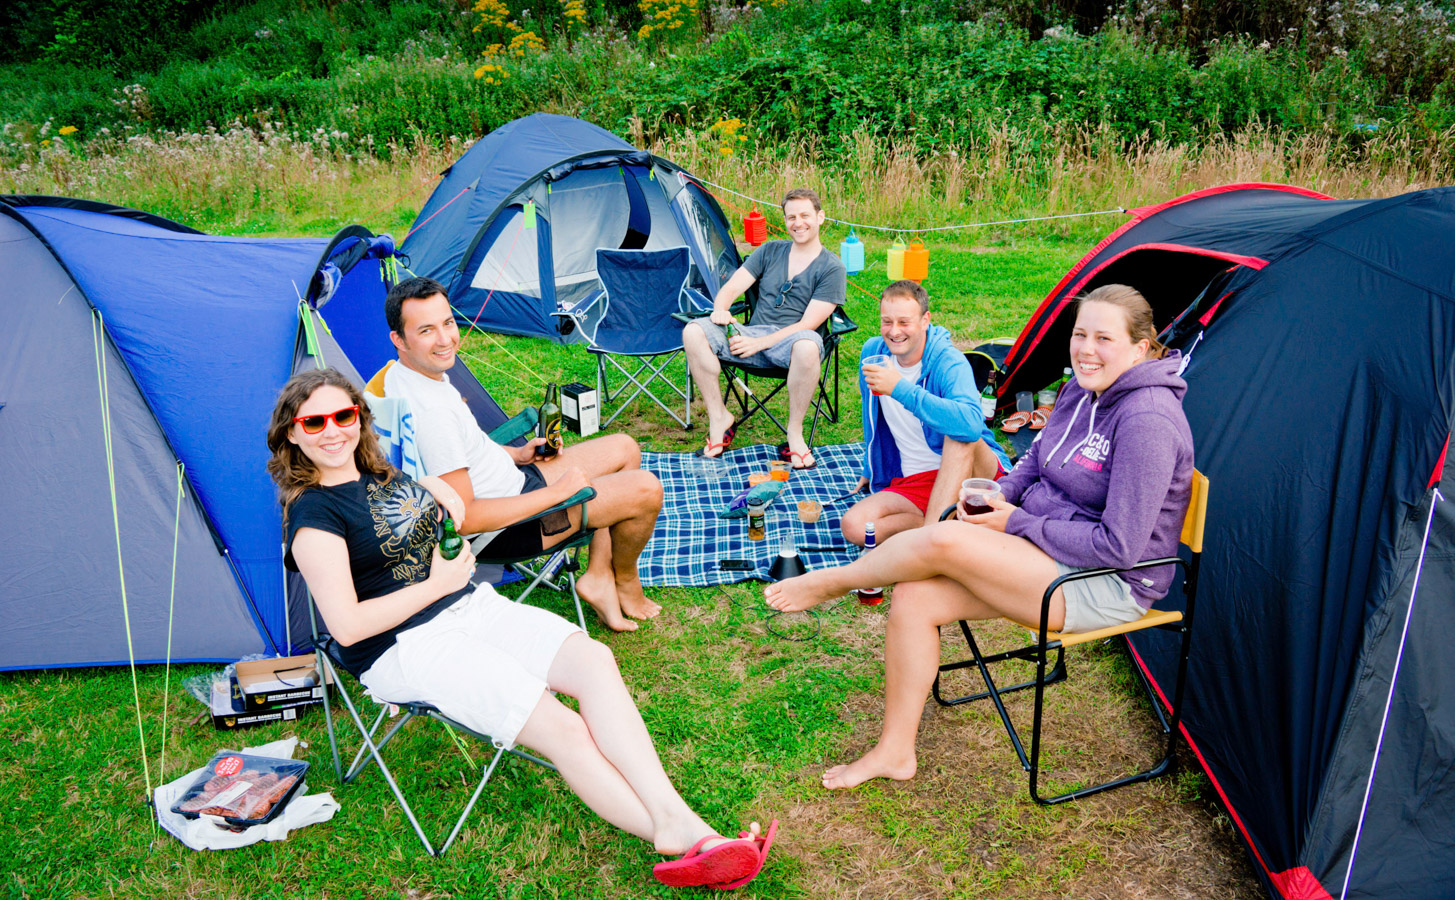 Monkton-Wyld-West-Dorset-Best-Top-Camping-Caravanning154